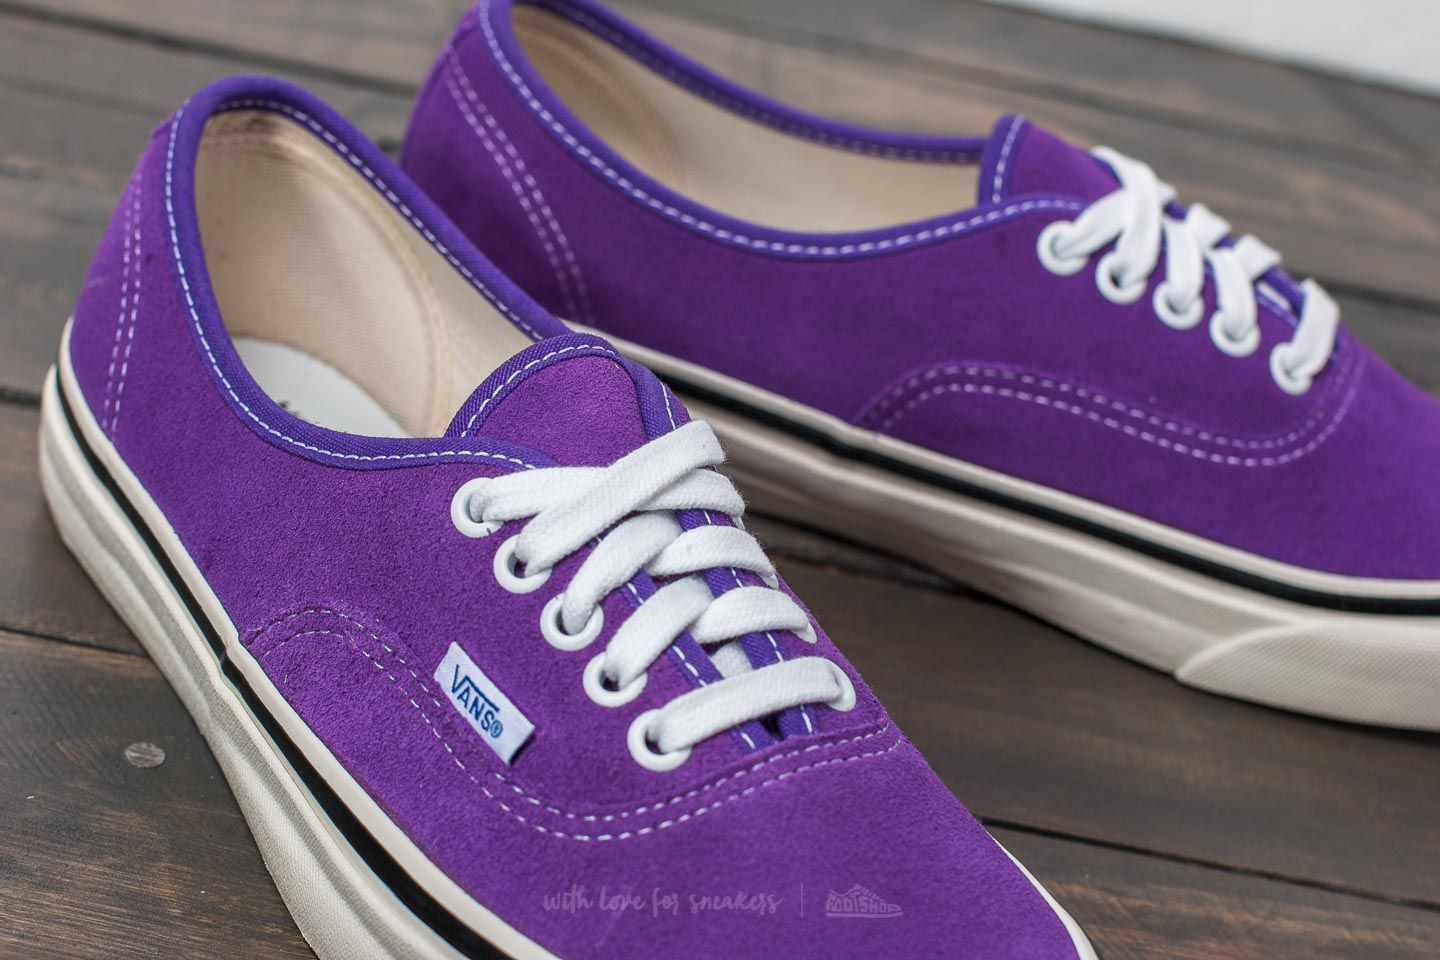 715cf5a55f Vans authentic anaheim factory bright purple at a great price € jpg  1440x960 Purple vans logo